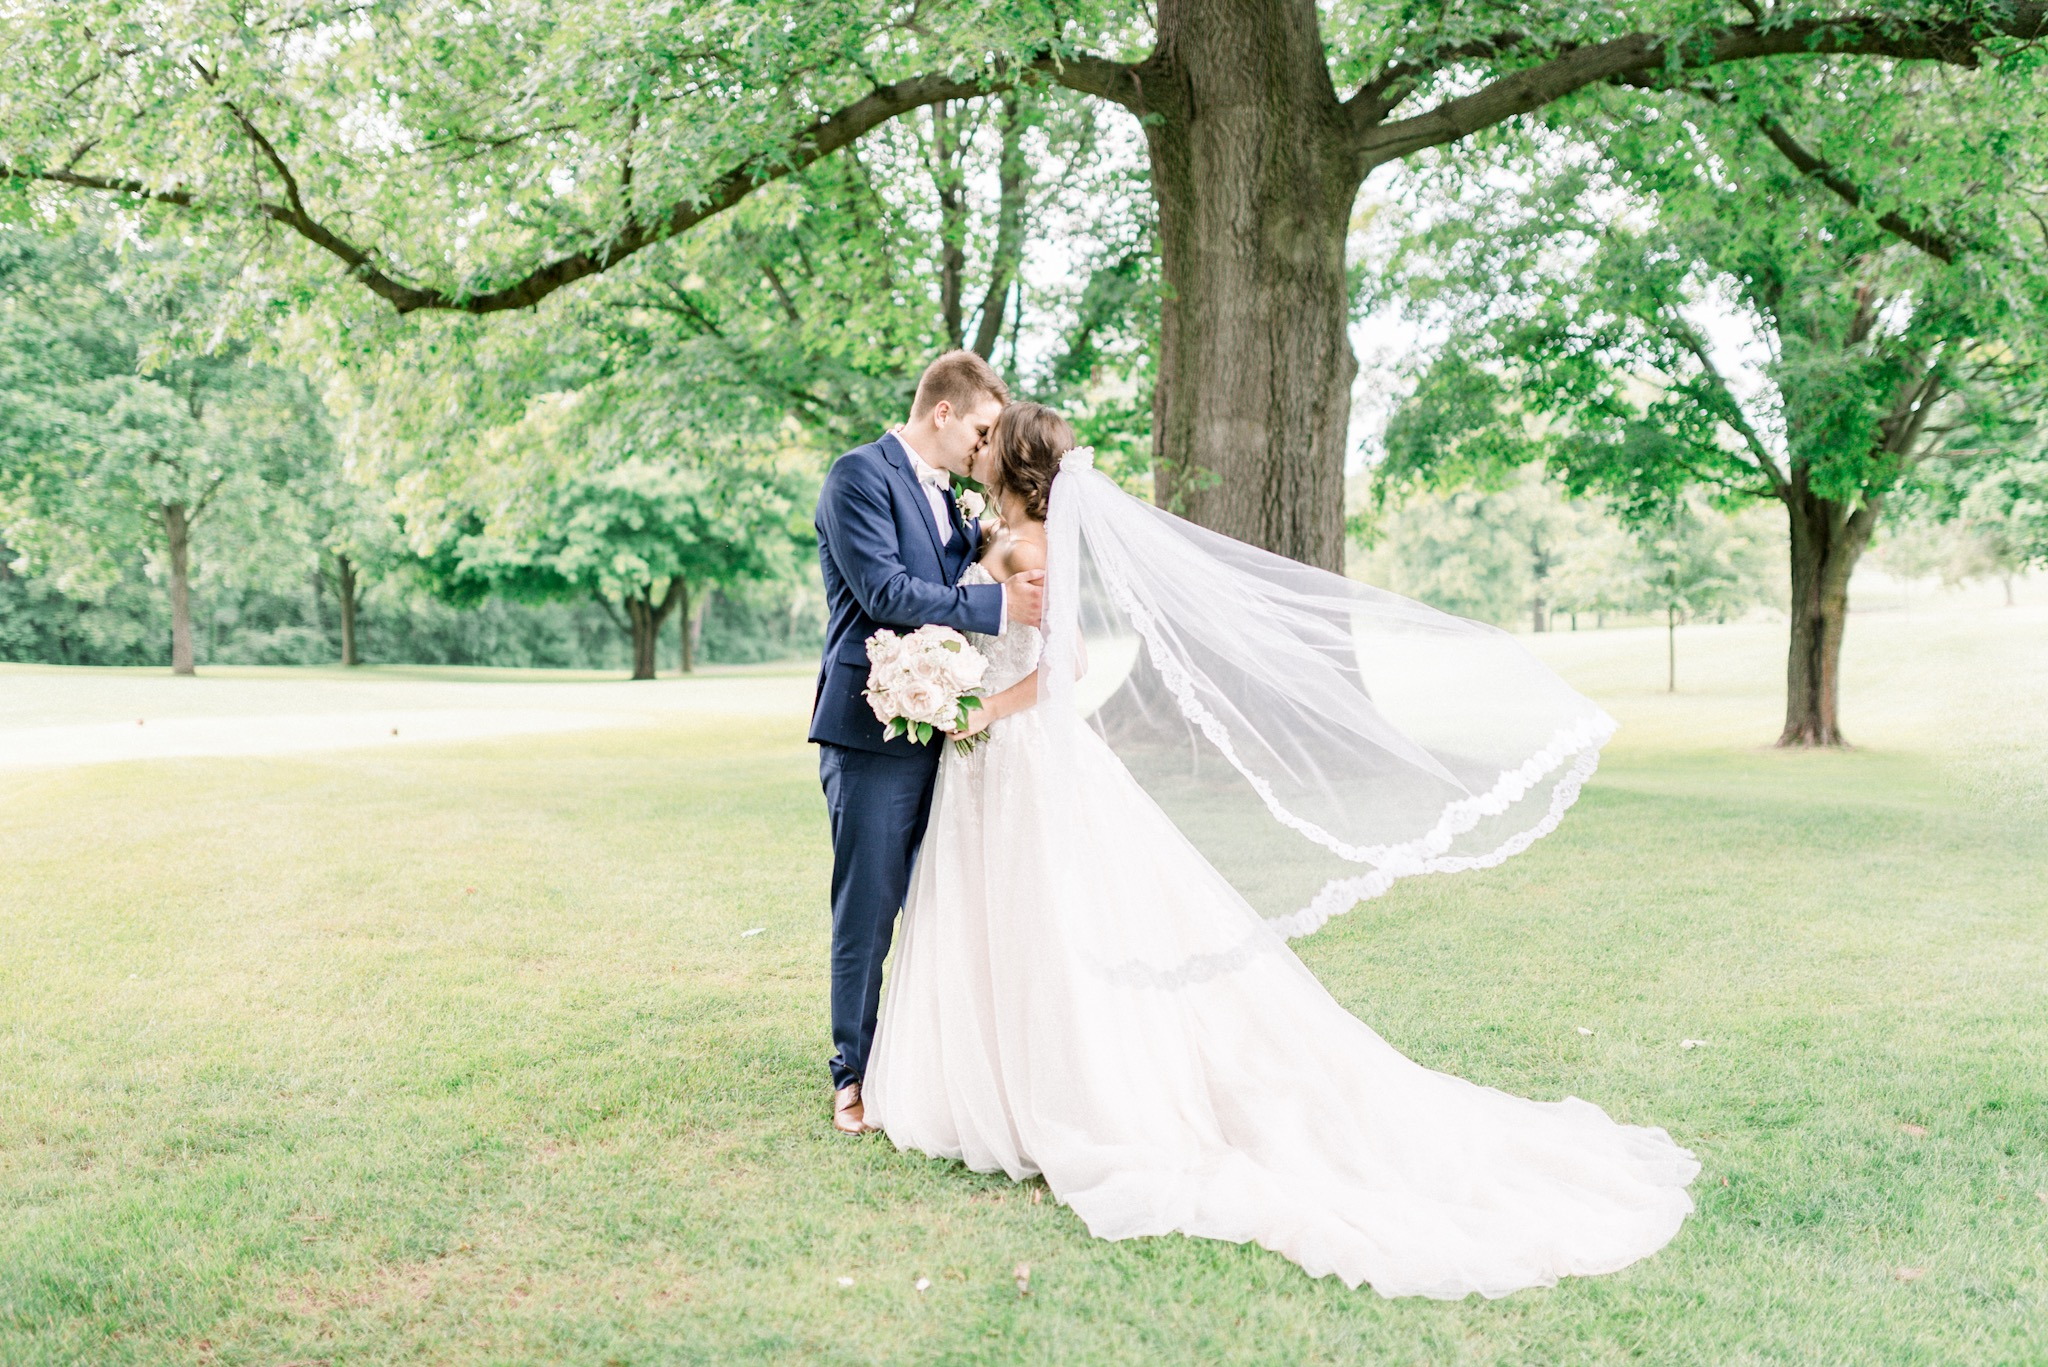 Sarah + Luke | An Elegant Lakeside Wedding in Warsaw | Indianapolis Destination Wedding Photographers